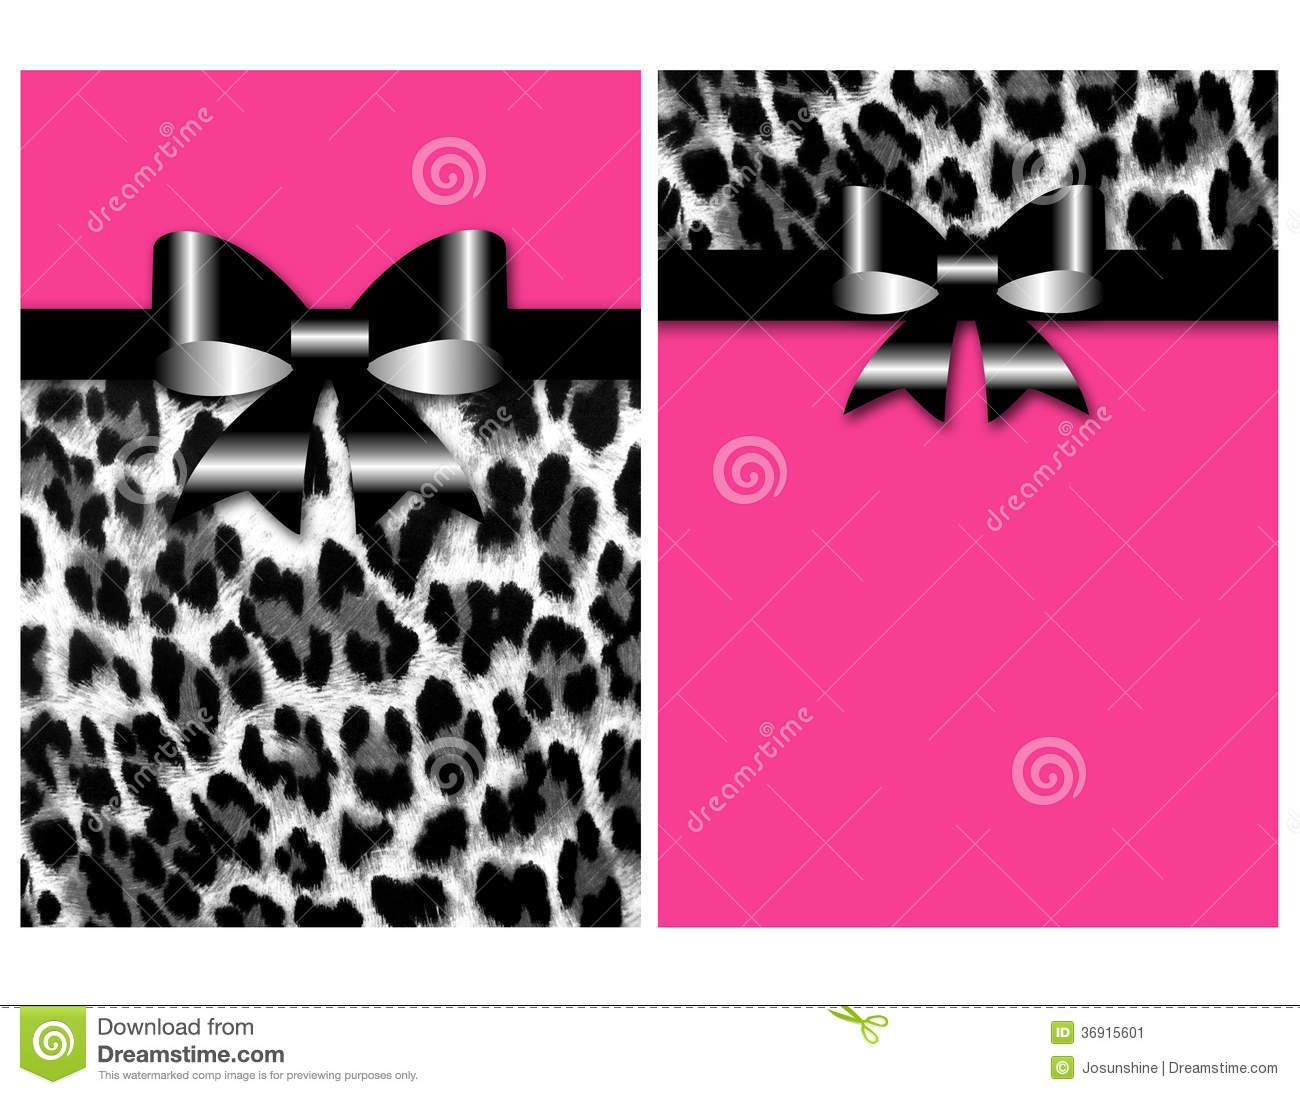 Sweet 16 Party Invitation was best invitations ideas